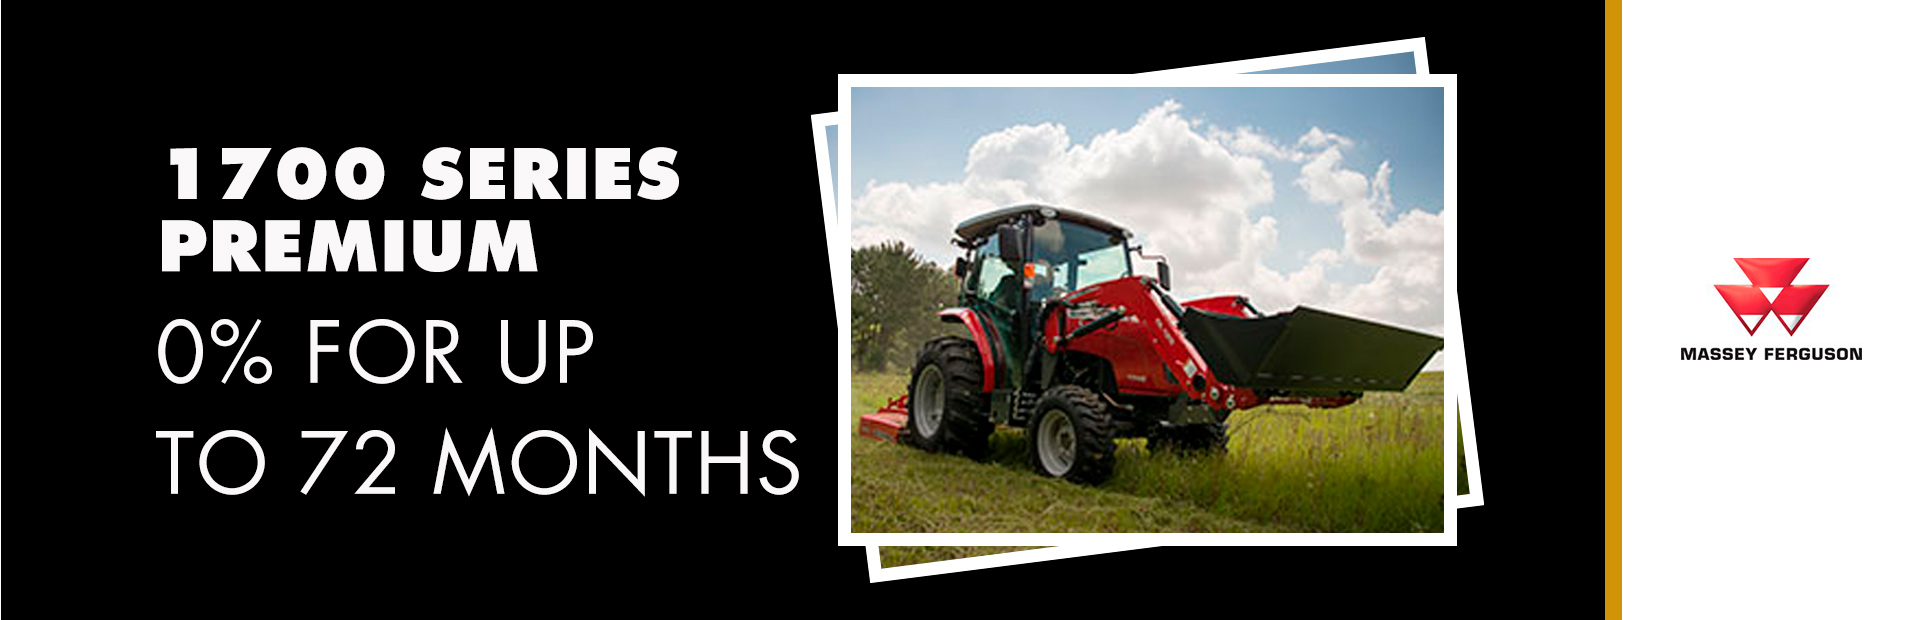 Massey Ferguson: 1700 Series Premium - 0% for up to 72 Months